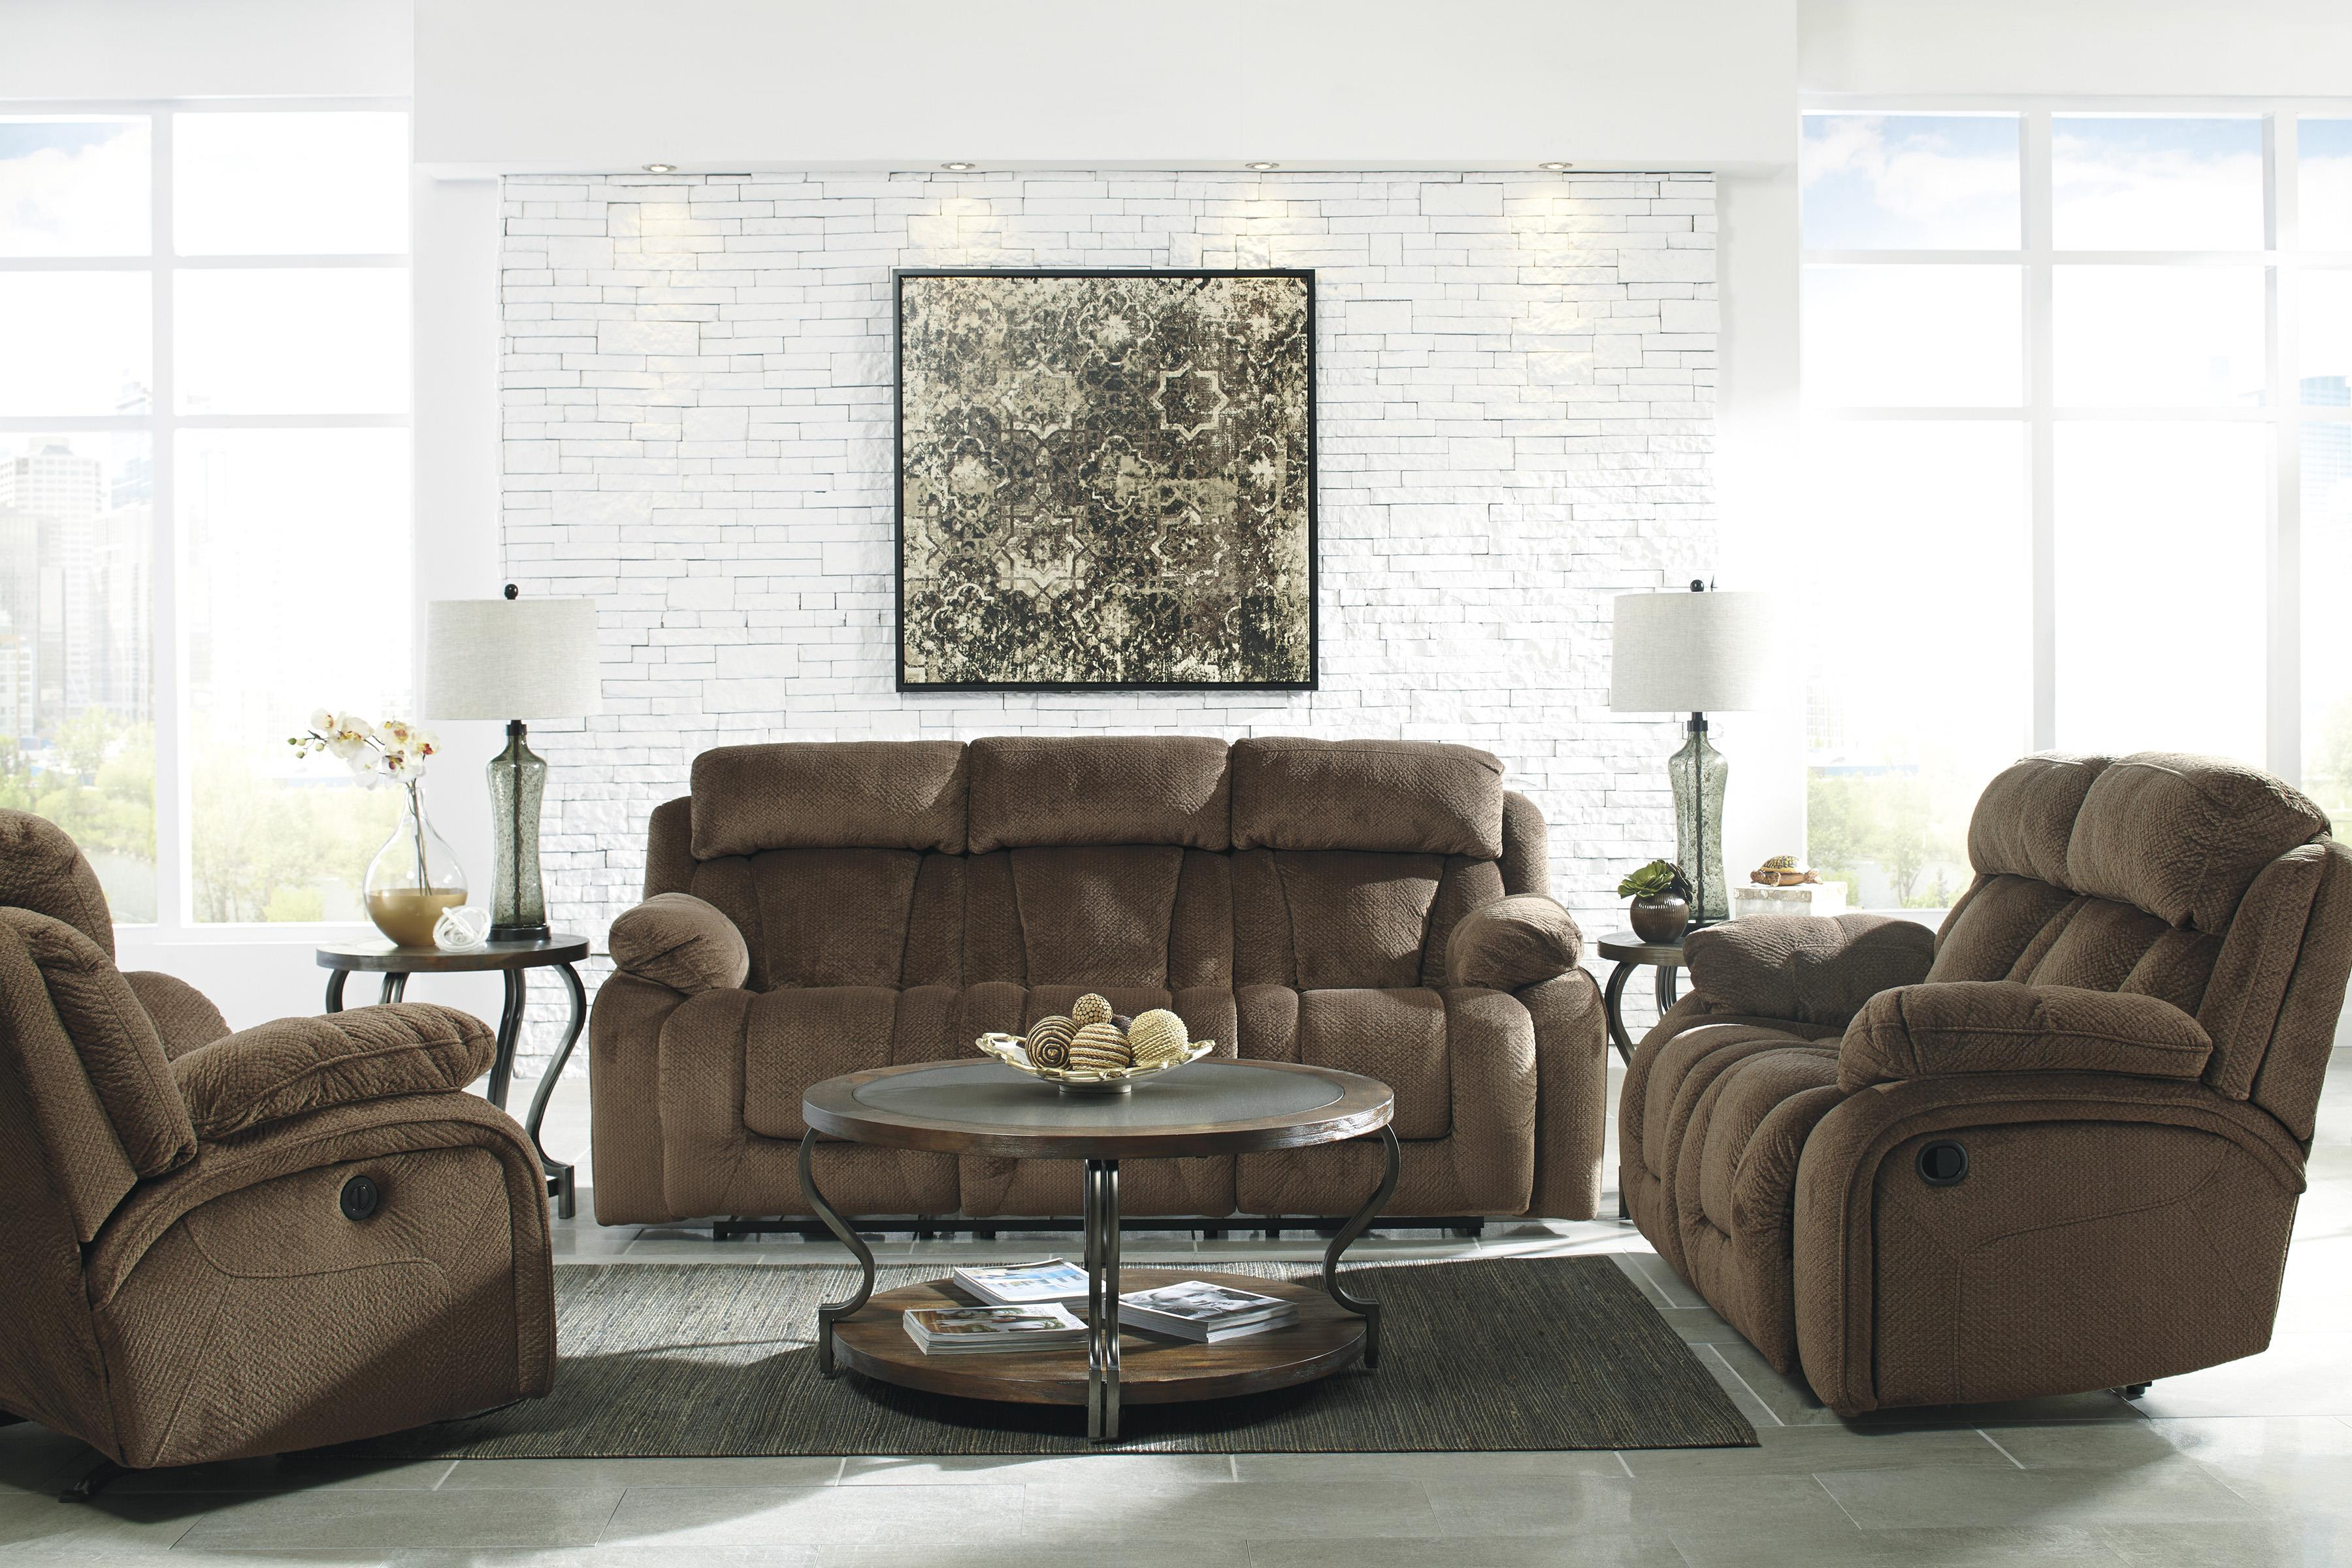 Signature Design by Ashley Stricklin Reclining Living Room Group - Item Number: 86503 Living Room Group 4